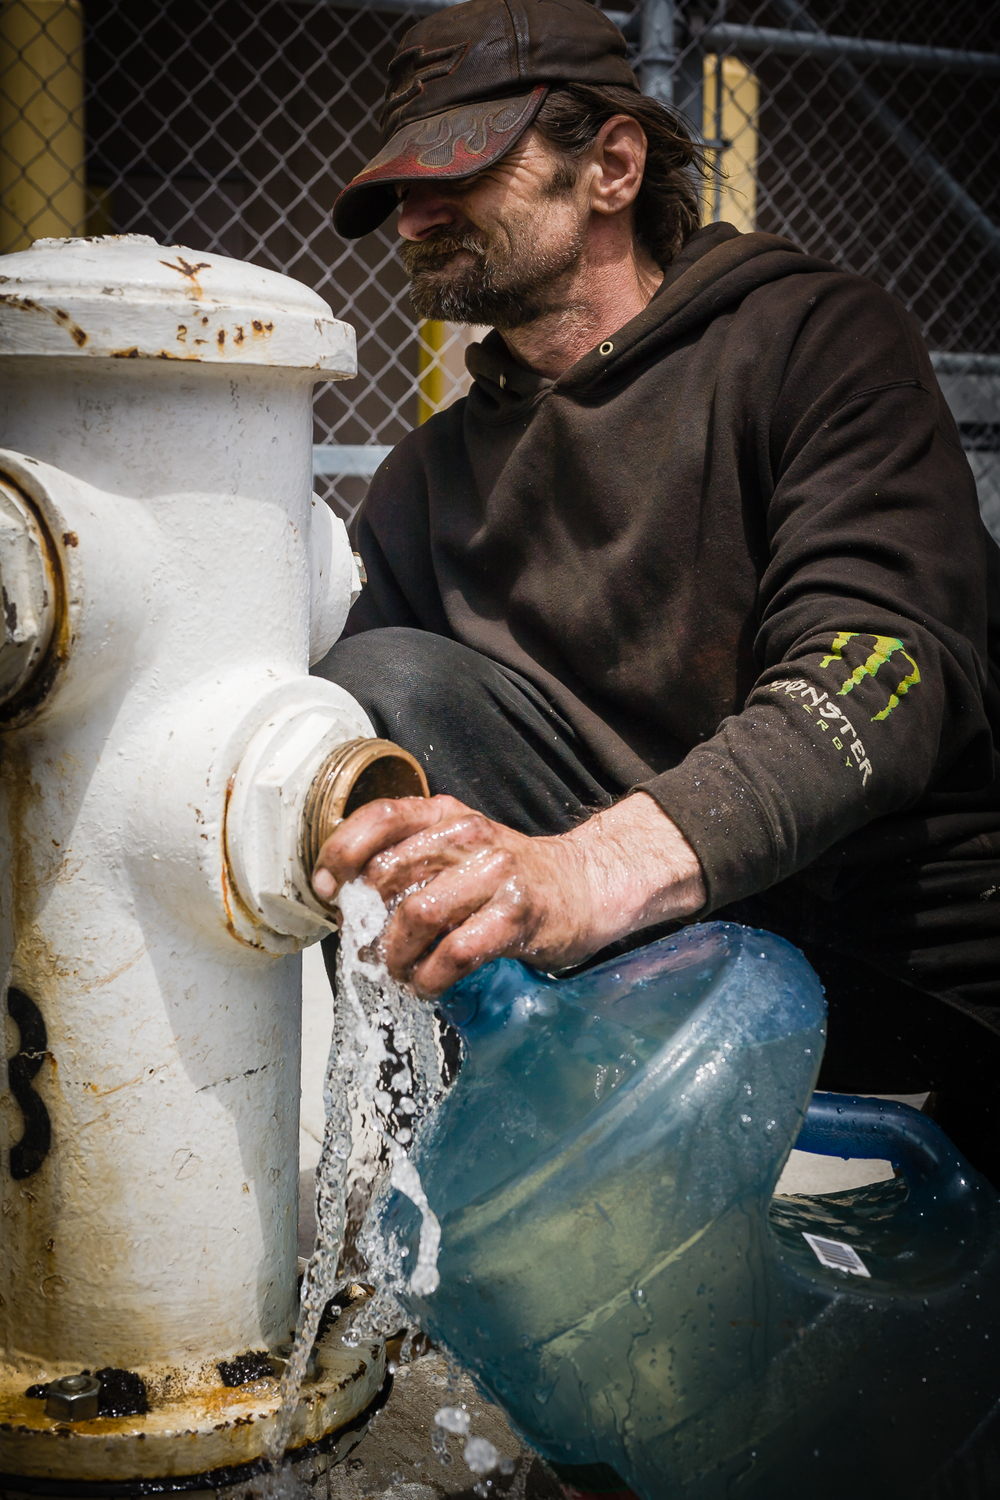 The homeless are extremely resourceful. They have many different water sources depending on the use. Steve taps into the city's water main at a fire hydrant to get water for cooking, and their pets.